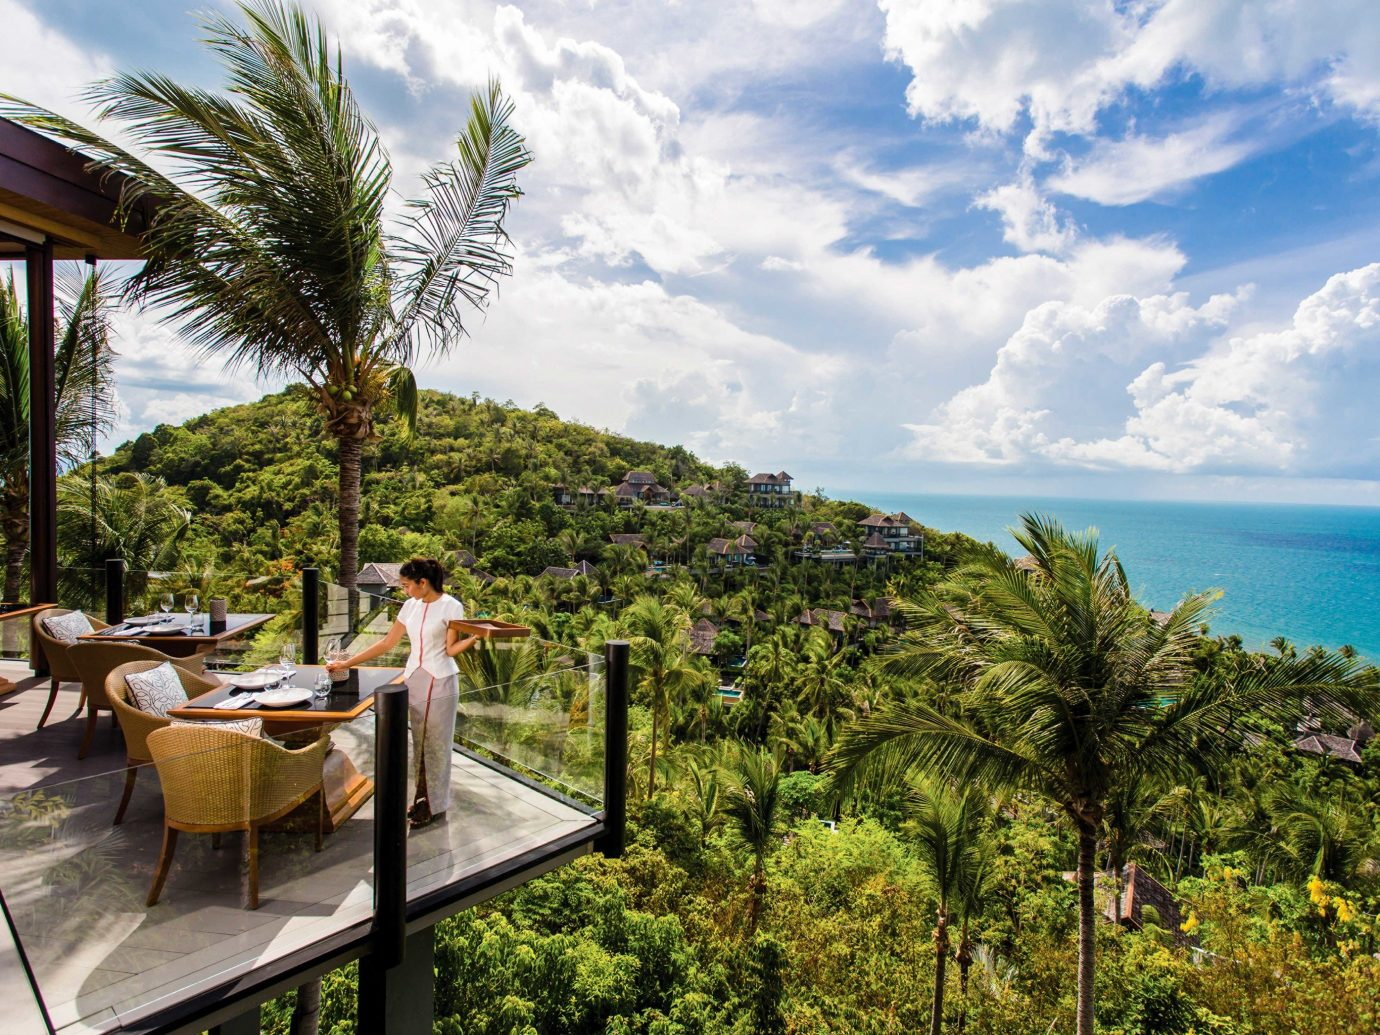 Hotels tree sky outdoor Resort palm tree arecales tropics Sea vacation real estate leisure tourism Ocean plant estate Beach caribbean water Coast overlooking area